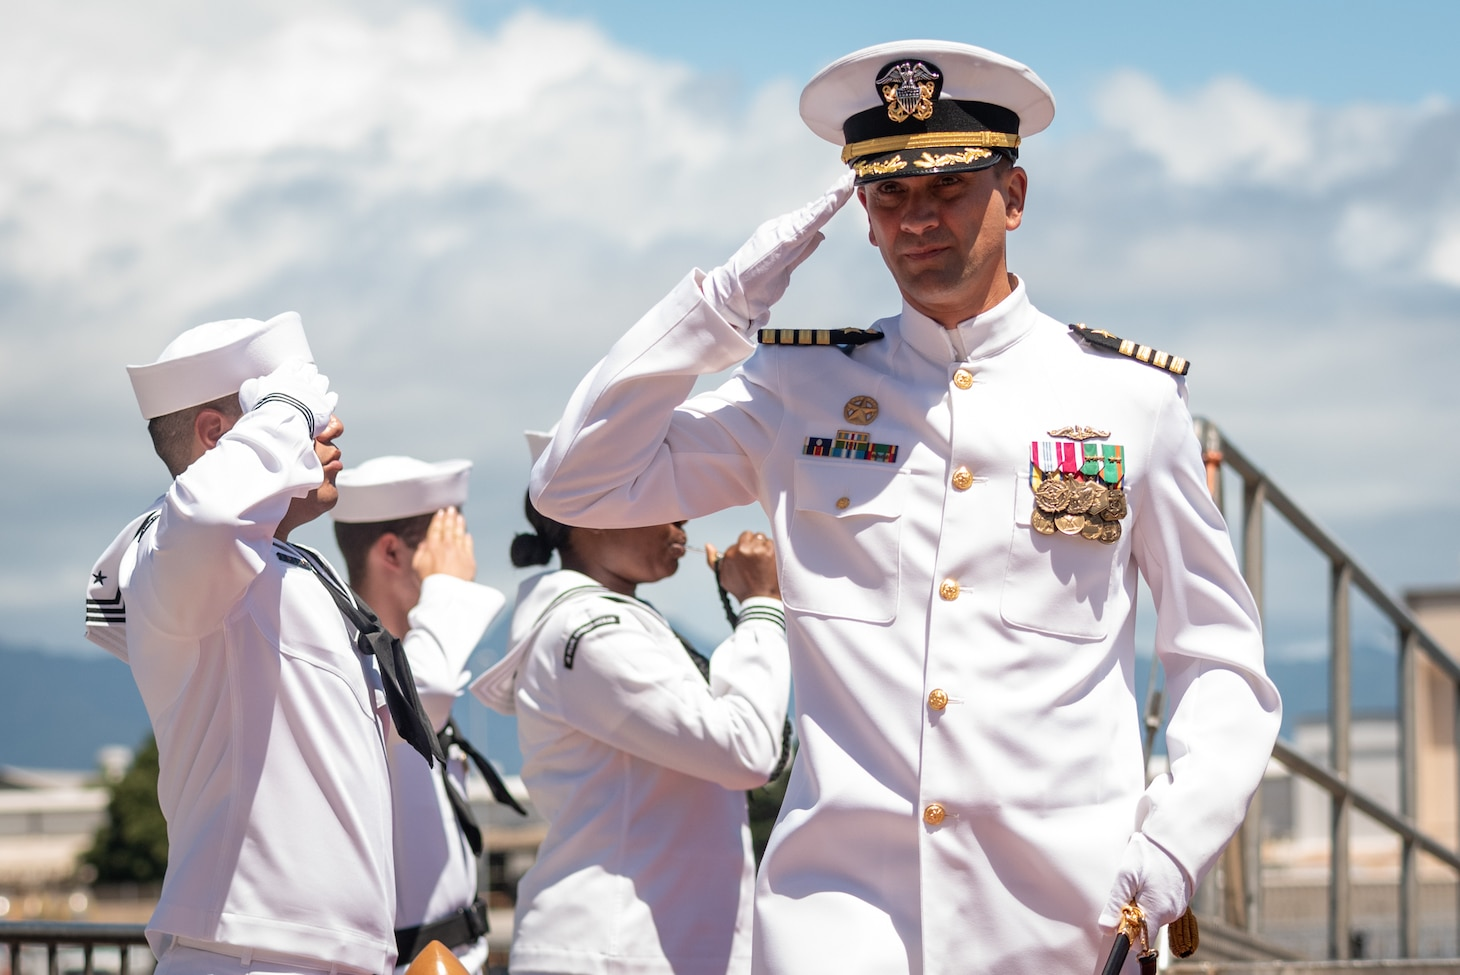 JOINT BASE PEARL HARBOR-HICKAM, Hawaii (May 31, 2019) Capt. Wes Bringham, commander, Submarine Squadron 1, is piped ashore after a change of command of the Virginia-class fast-attack submarine USS North Carolina (SSN 777)at Joint Base Pearl Harbor-Hickam, Hawaii, May 31. Cmdr. Matthew Lewis, commanding officer of North Carolina, was relieved by Cmdr. Michael Fisher, after more than 30 months in command of the vessel. (U.S. Navy Photo by Mass Communication Specialist 1st Class Daniel Hinton)